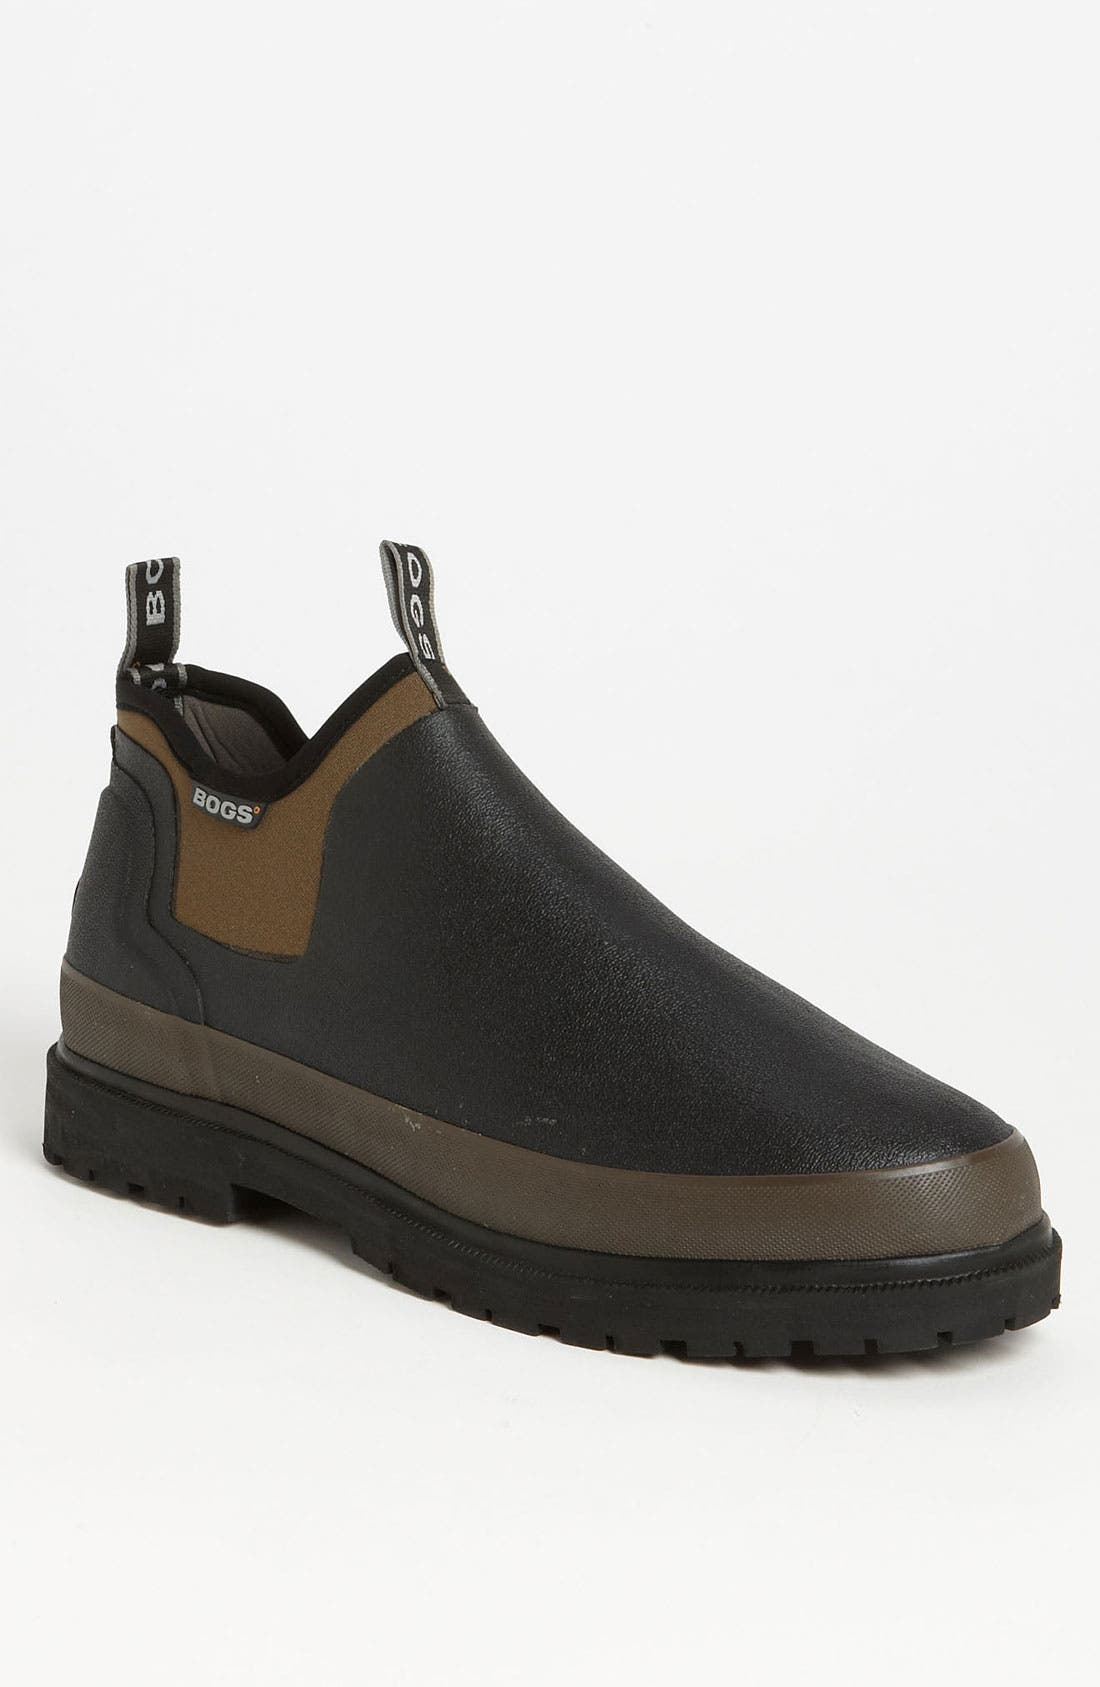 Alternate Image 1 Selected - Bogs 'Tillamook Bay' Rain Boot   (Men)